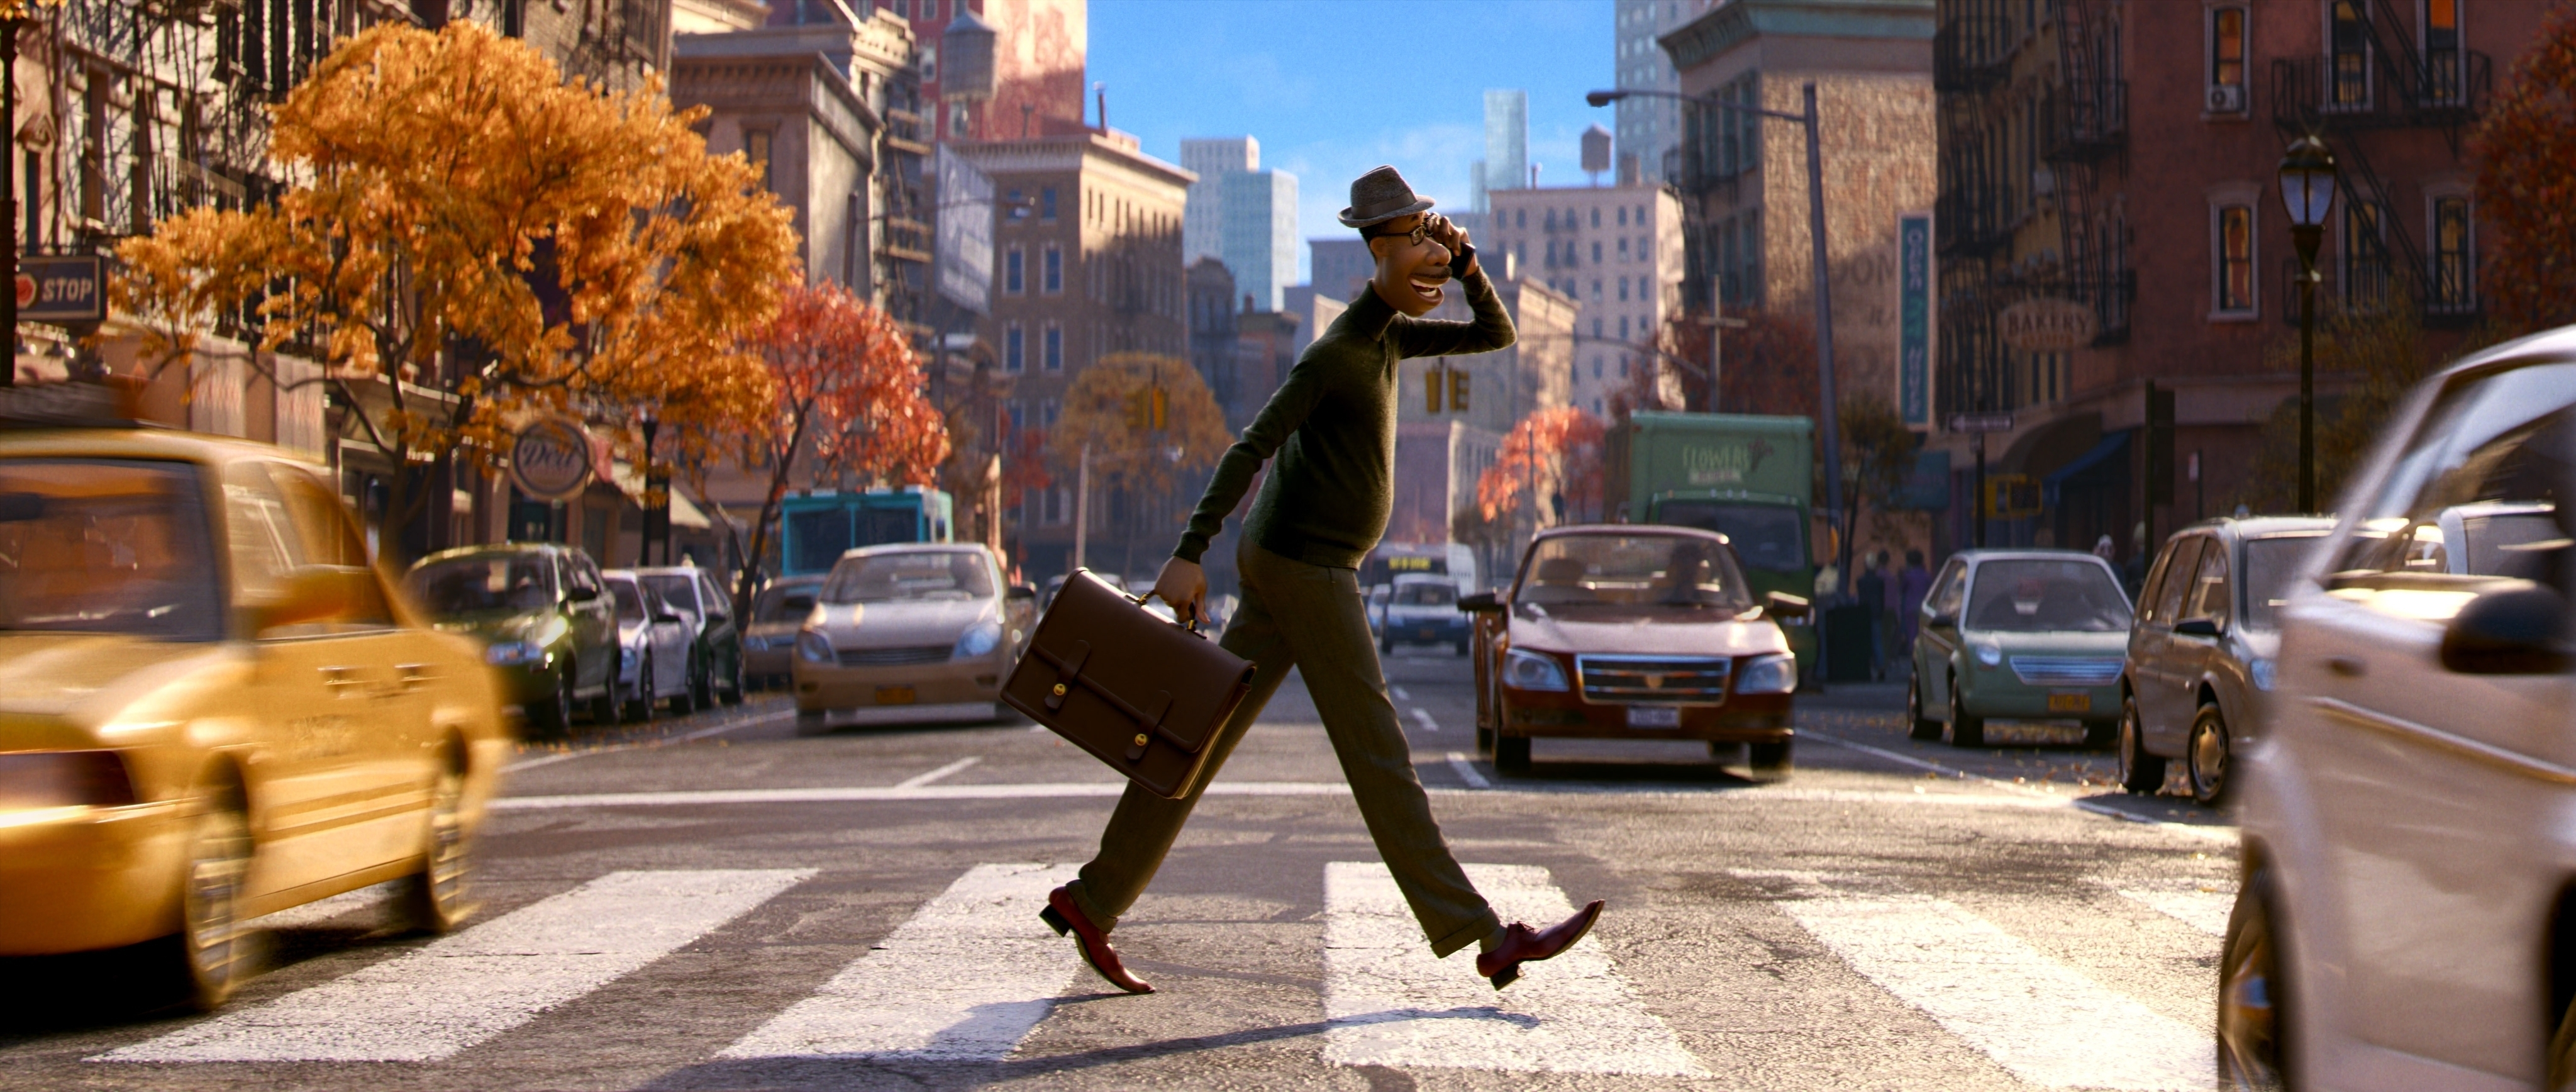 Good For The Soul Pixar S Latest Move Is One Of The Studio S Very Best Albuquerque Journal